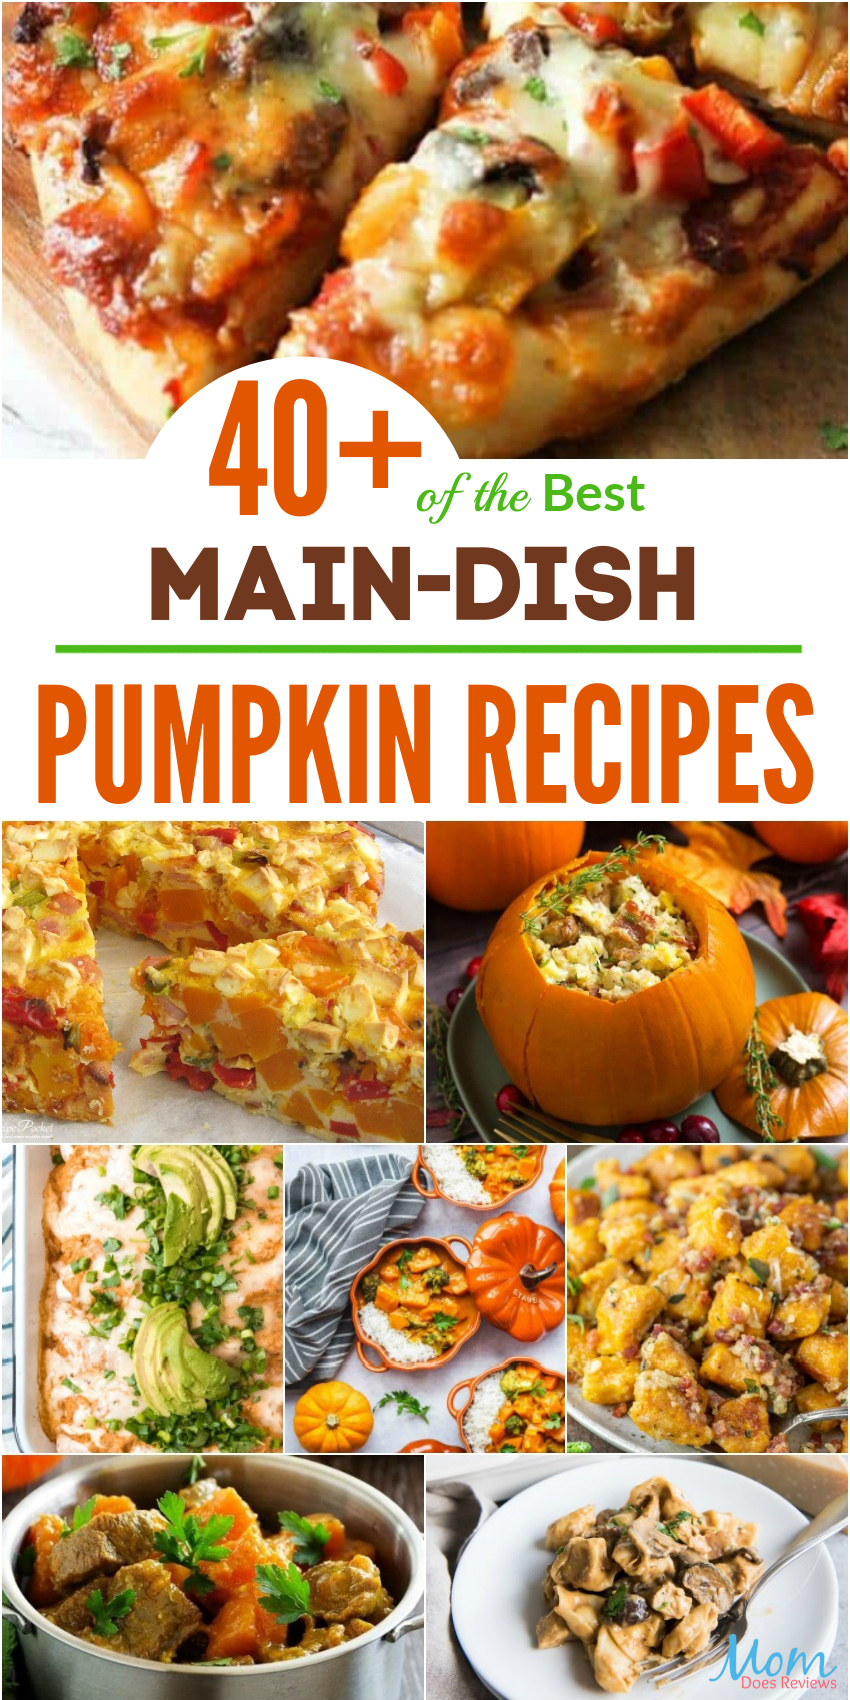 40+ of the Best Main-Dish Pumpkin Recipes You Simply Must Try #recipes #pumpkin #foodie